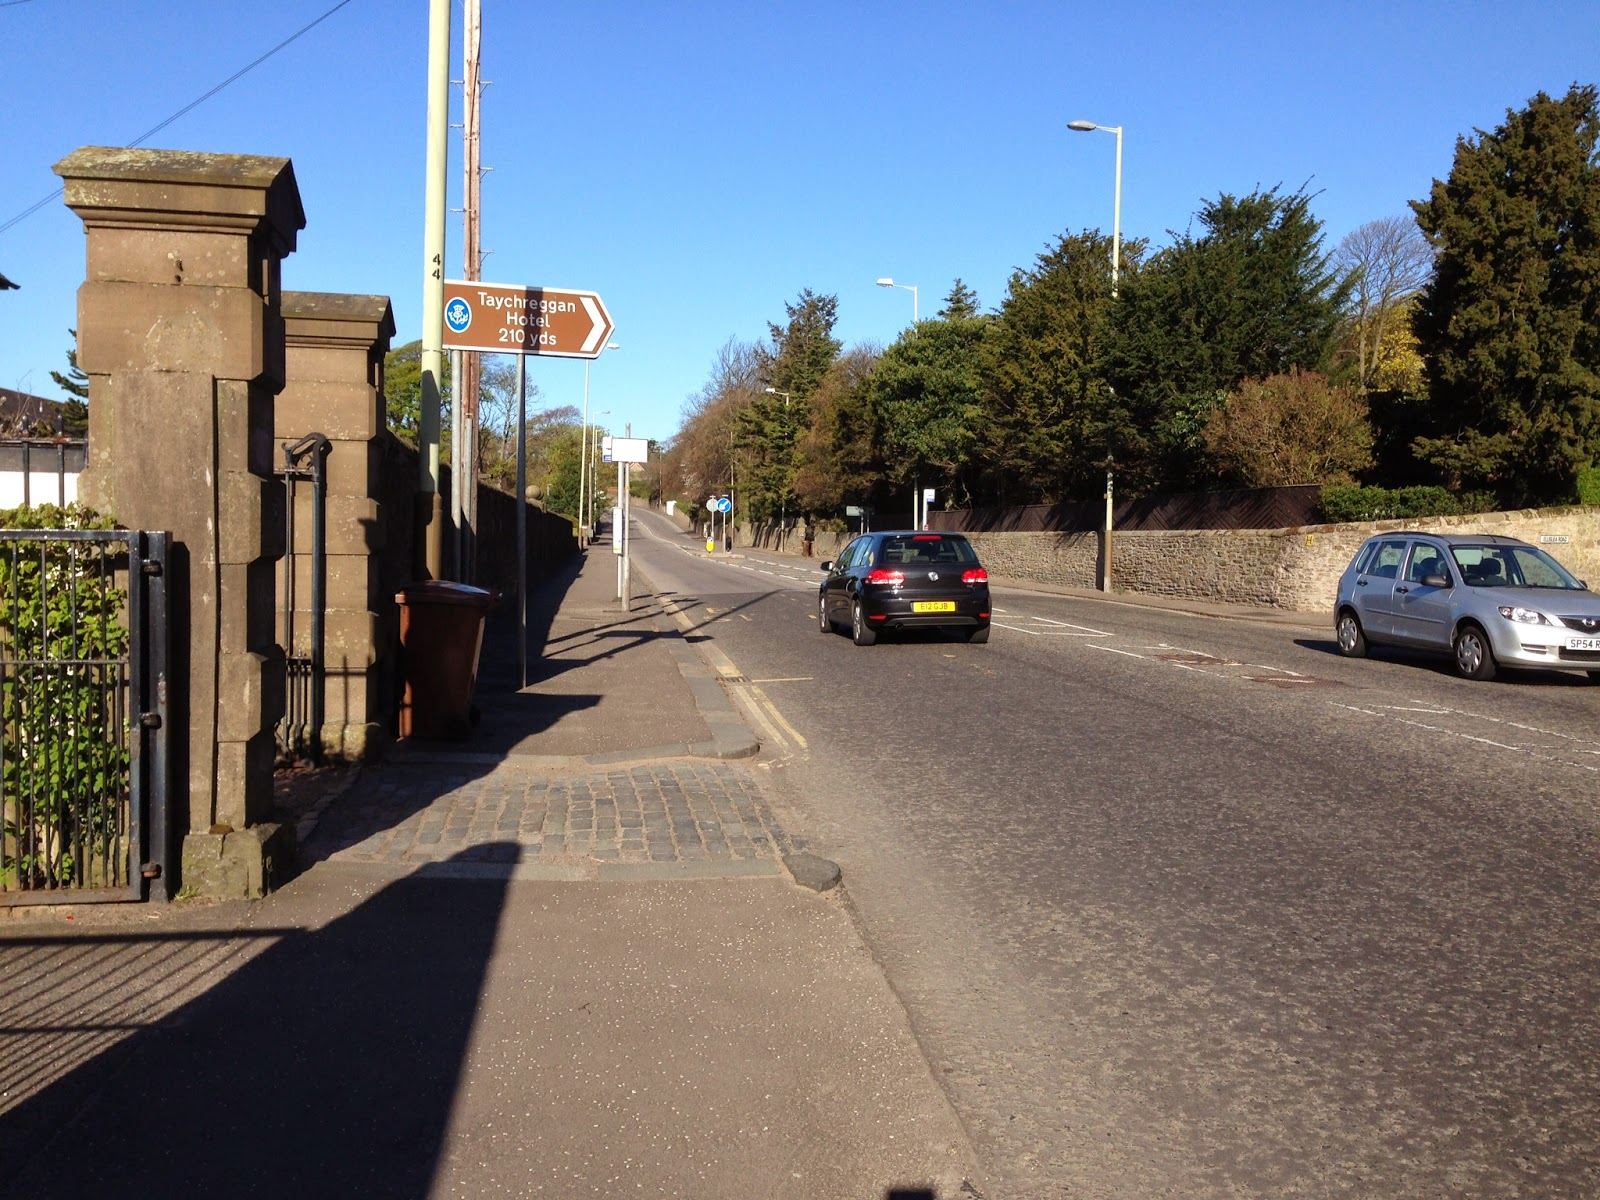 Dundee Road Broughty Ferry looking towards Dundee